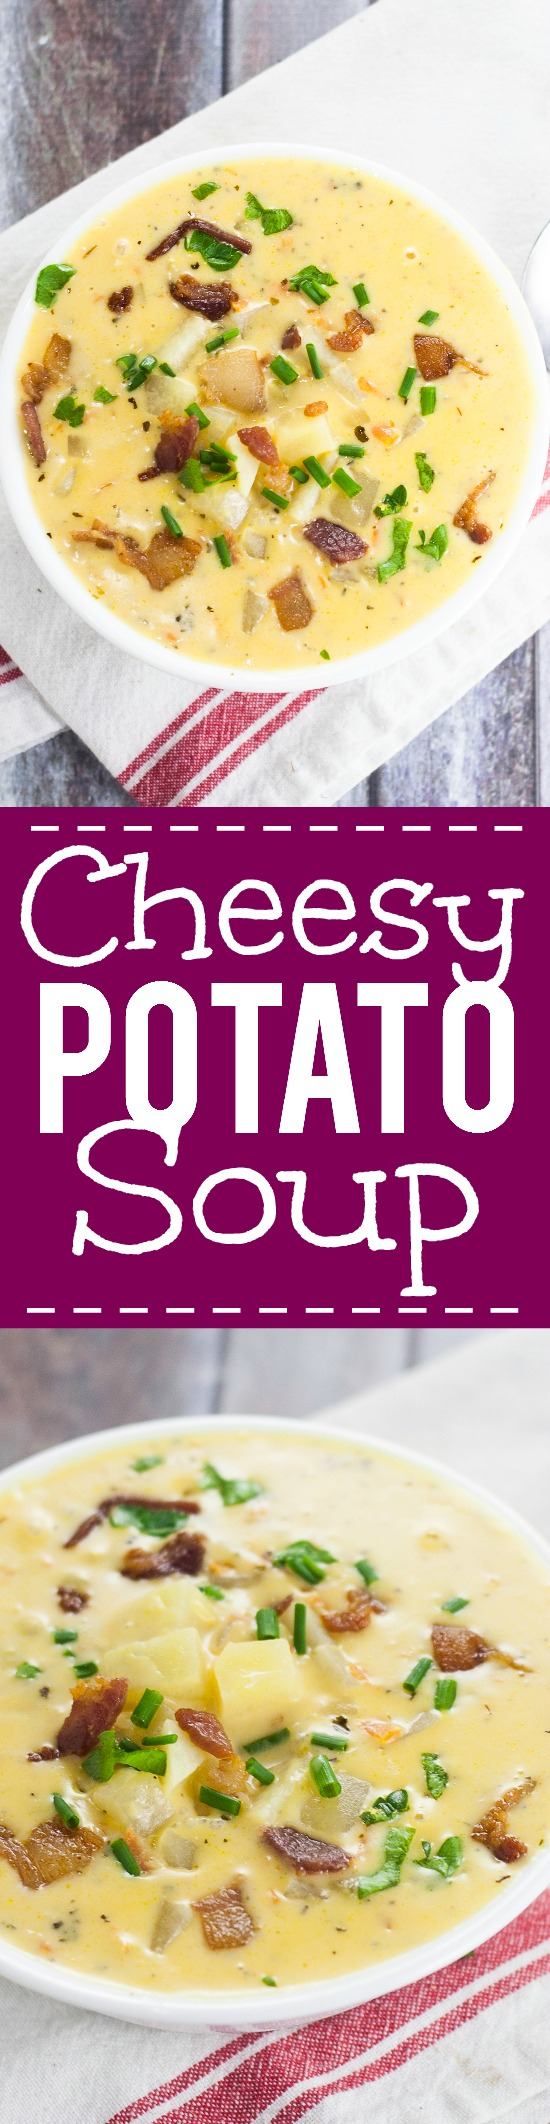 Cheesy Potato Soup Recipe - Warm and creamy Cheesy Potato Soup recipe is a deliciously perfect classic comfort food recipe to keep you warm and happy all winter long. Yummmm! One of my all time favorite delicious soup recipes. Ever.